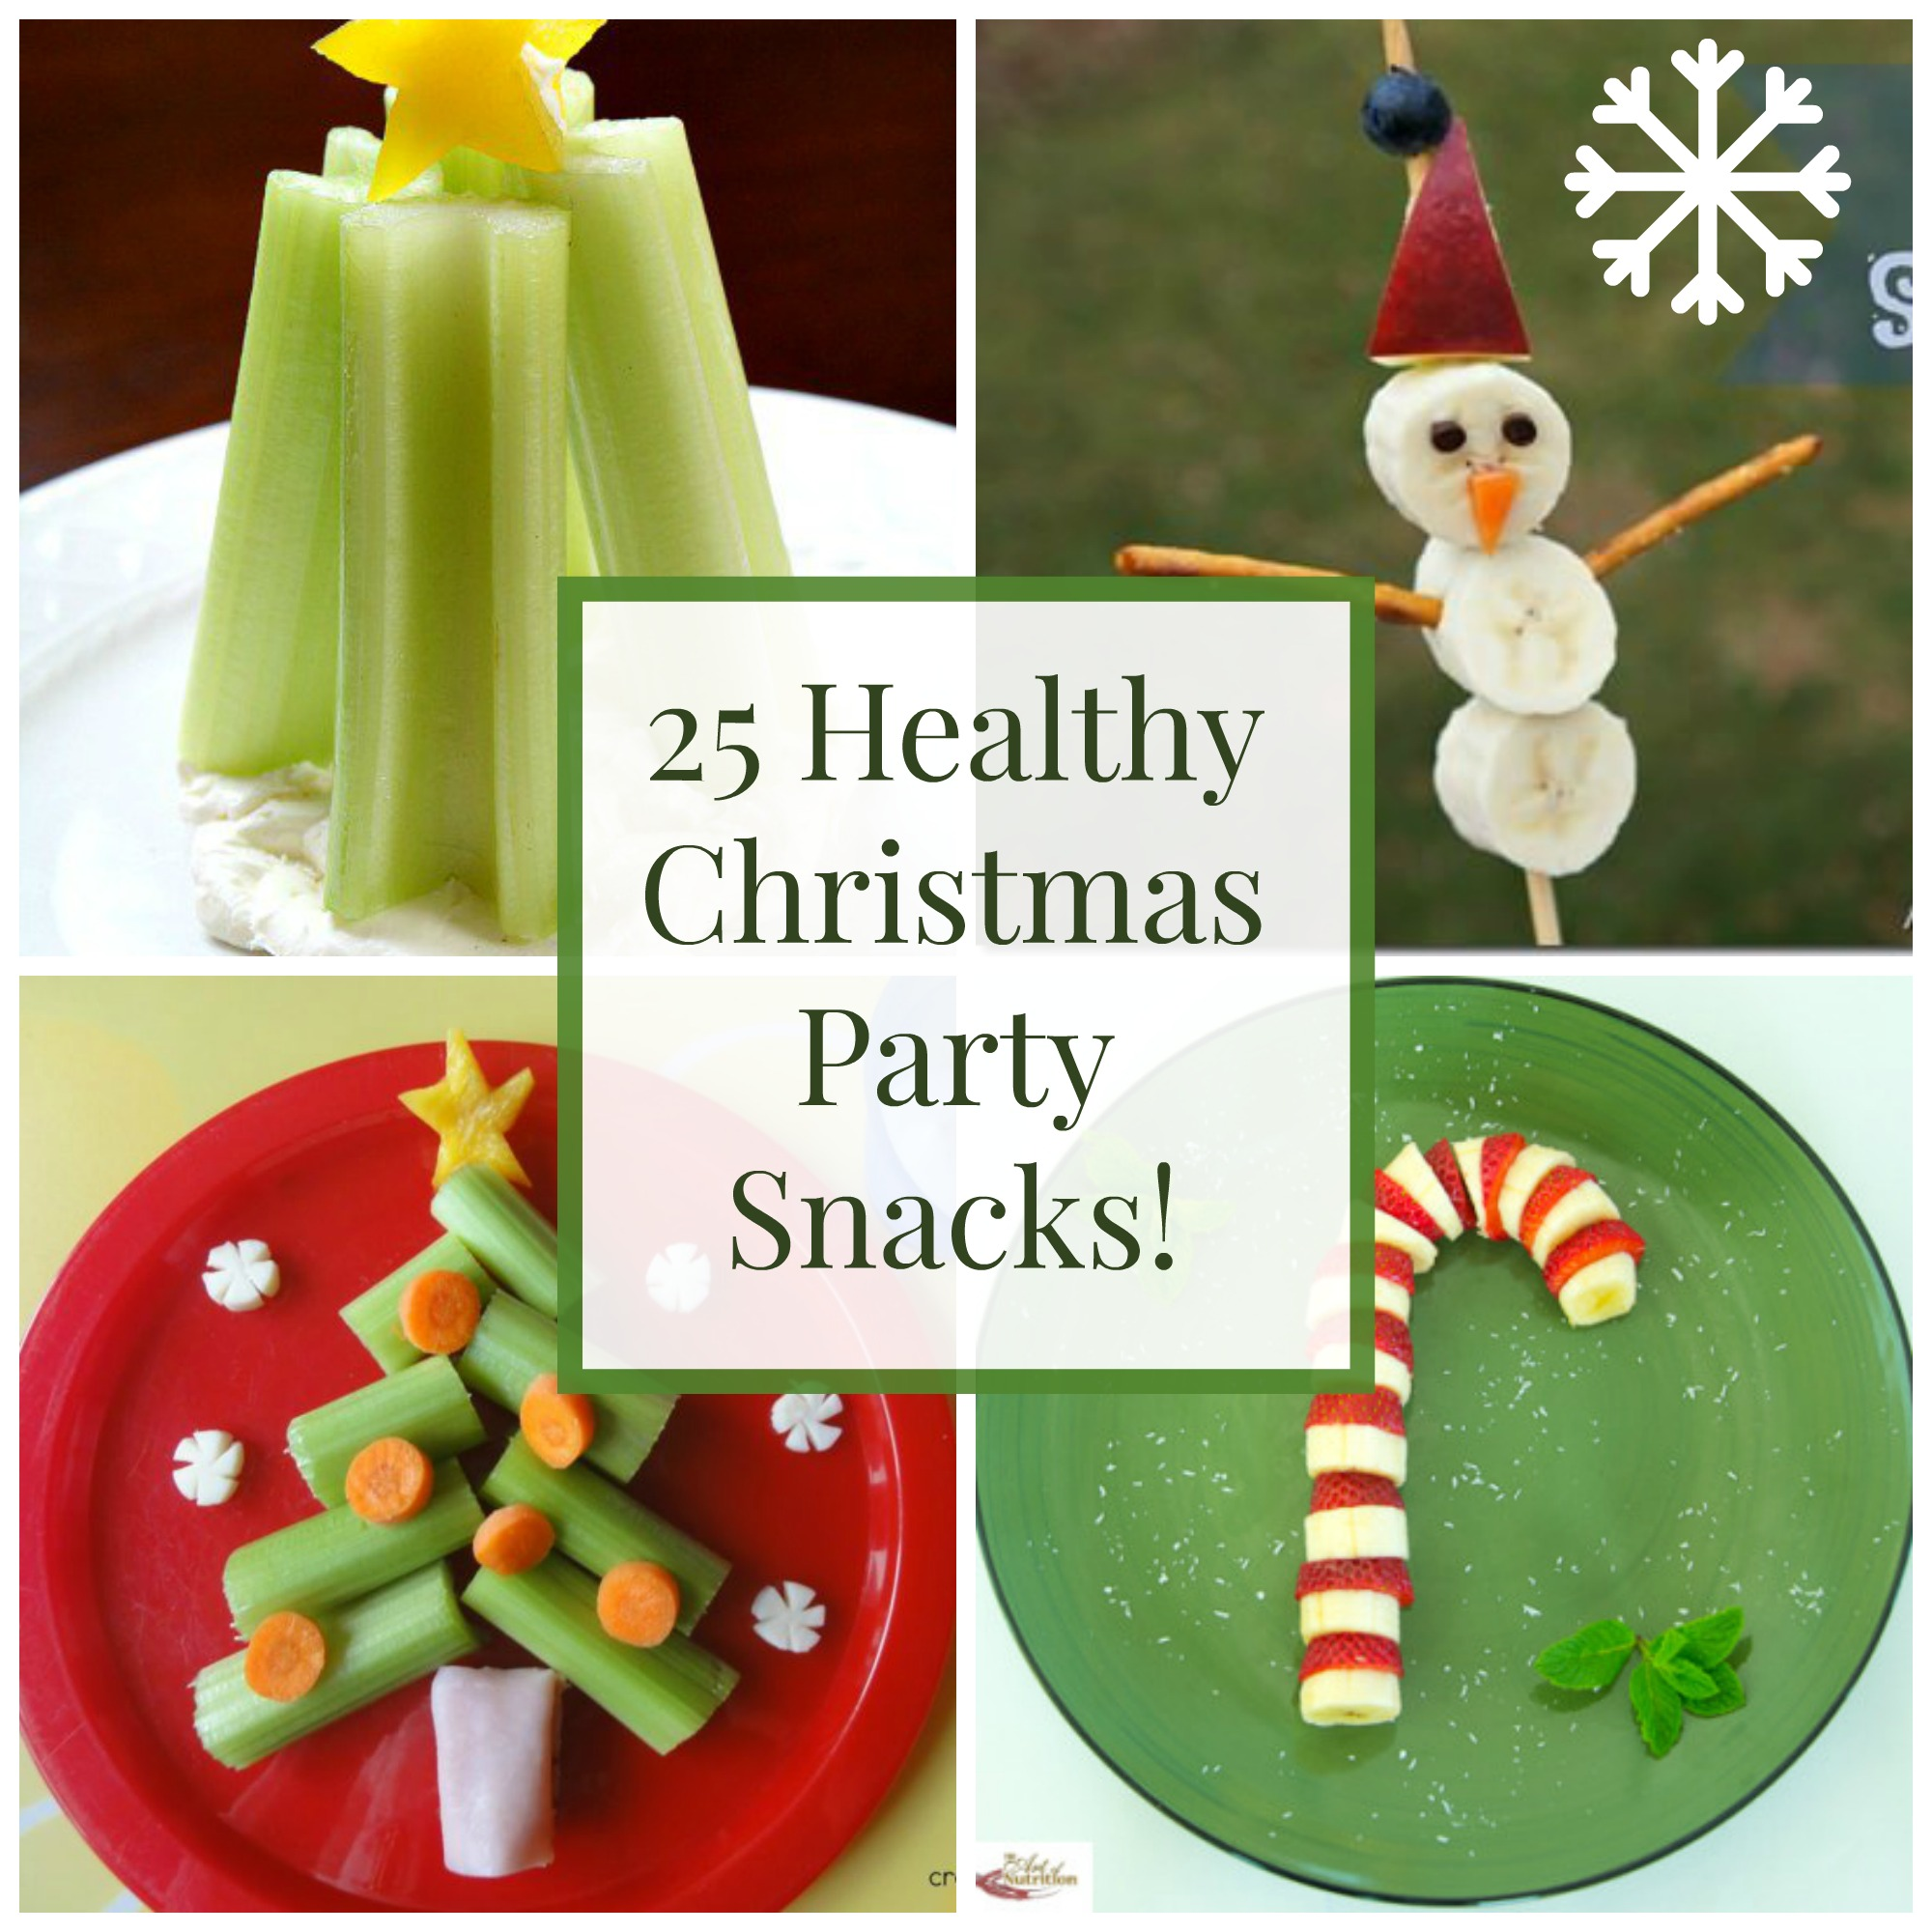 25 Healthy Christmas Snacks and Party Foods | Healthy Ideas for Kids